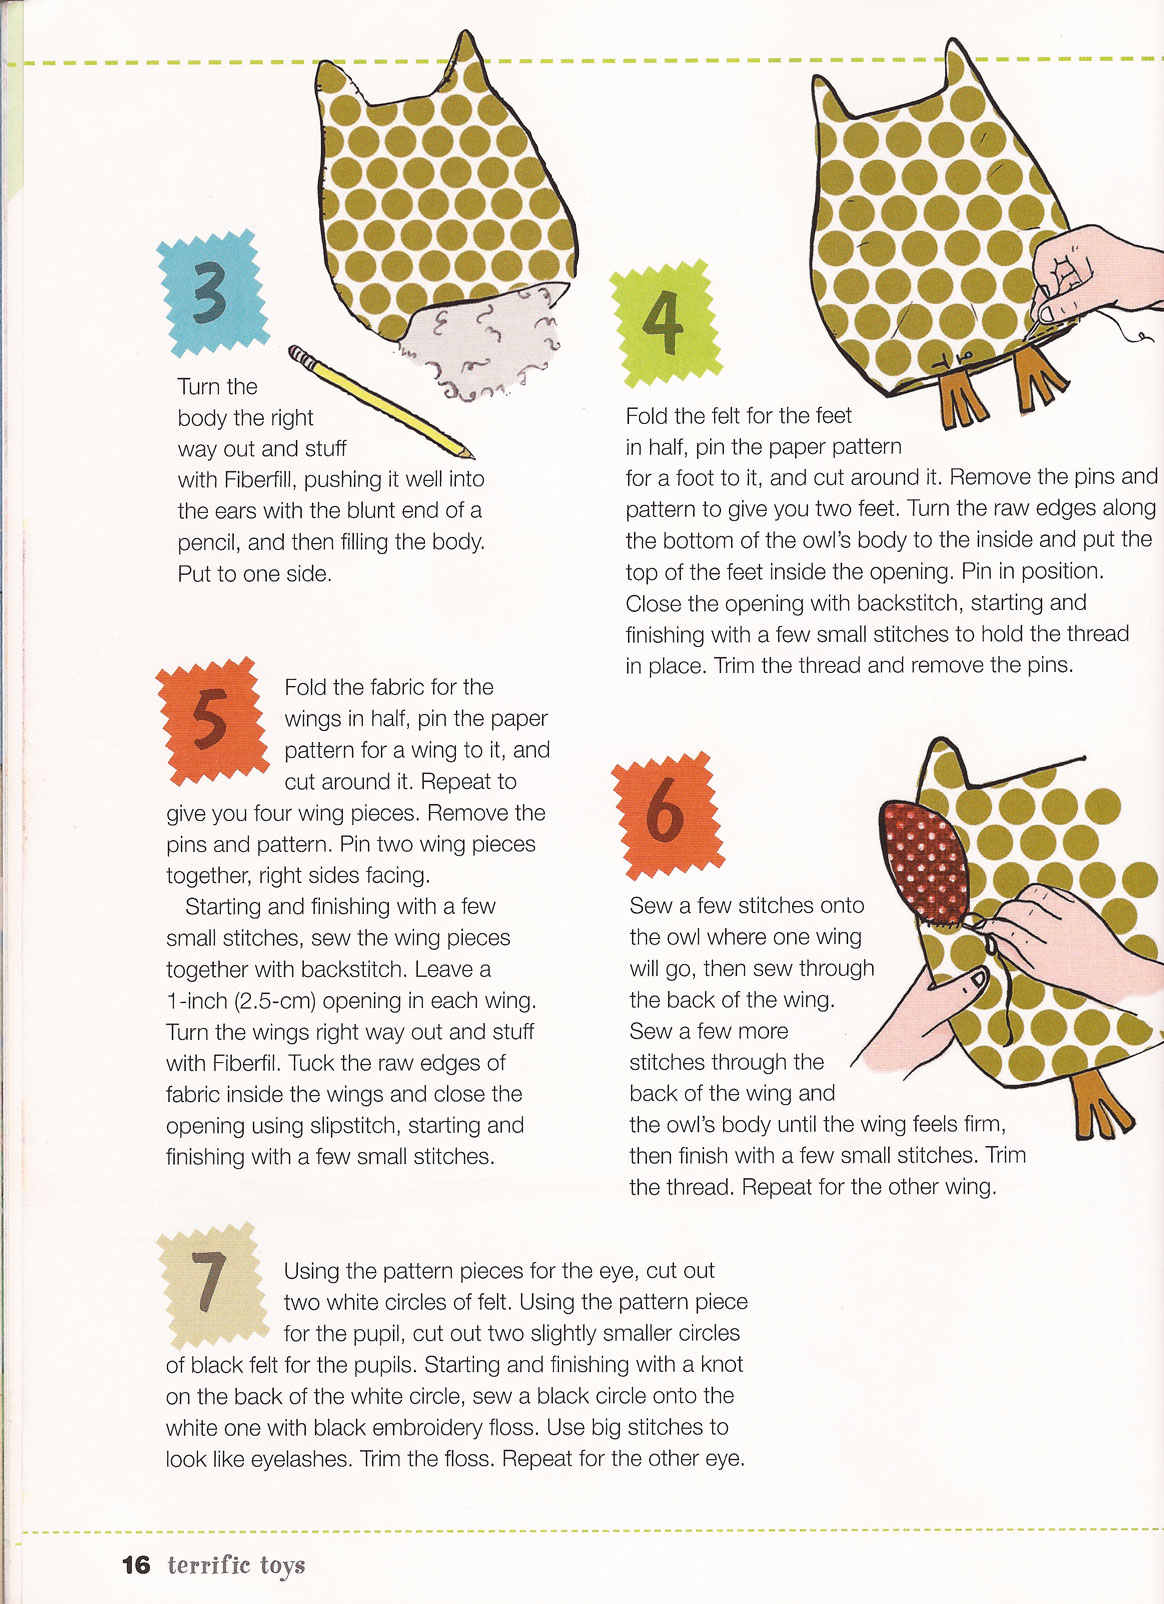 My First Sewing Book Owl Project | BookAddicts.org